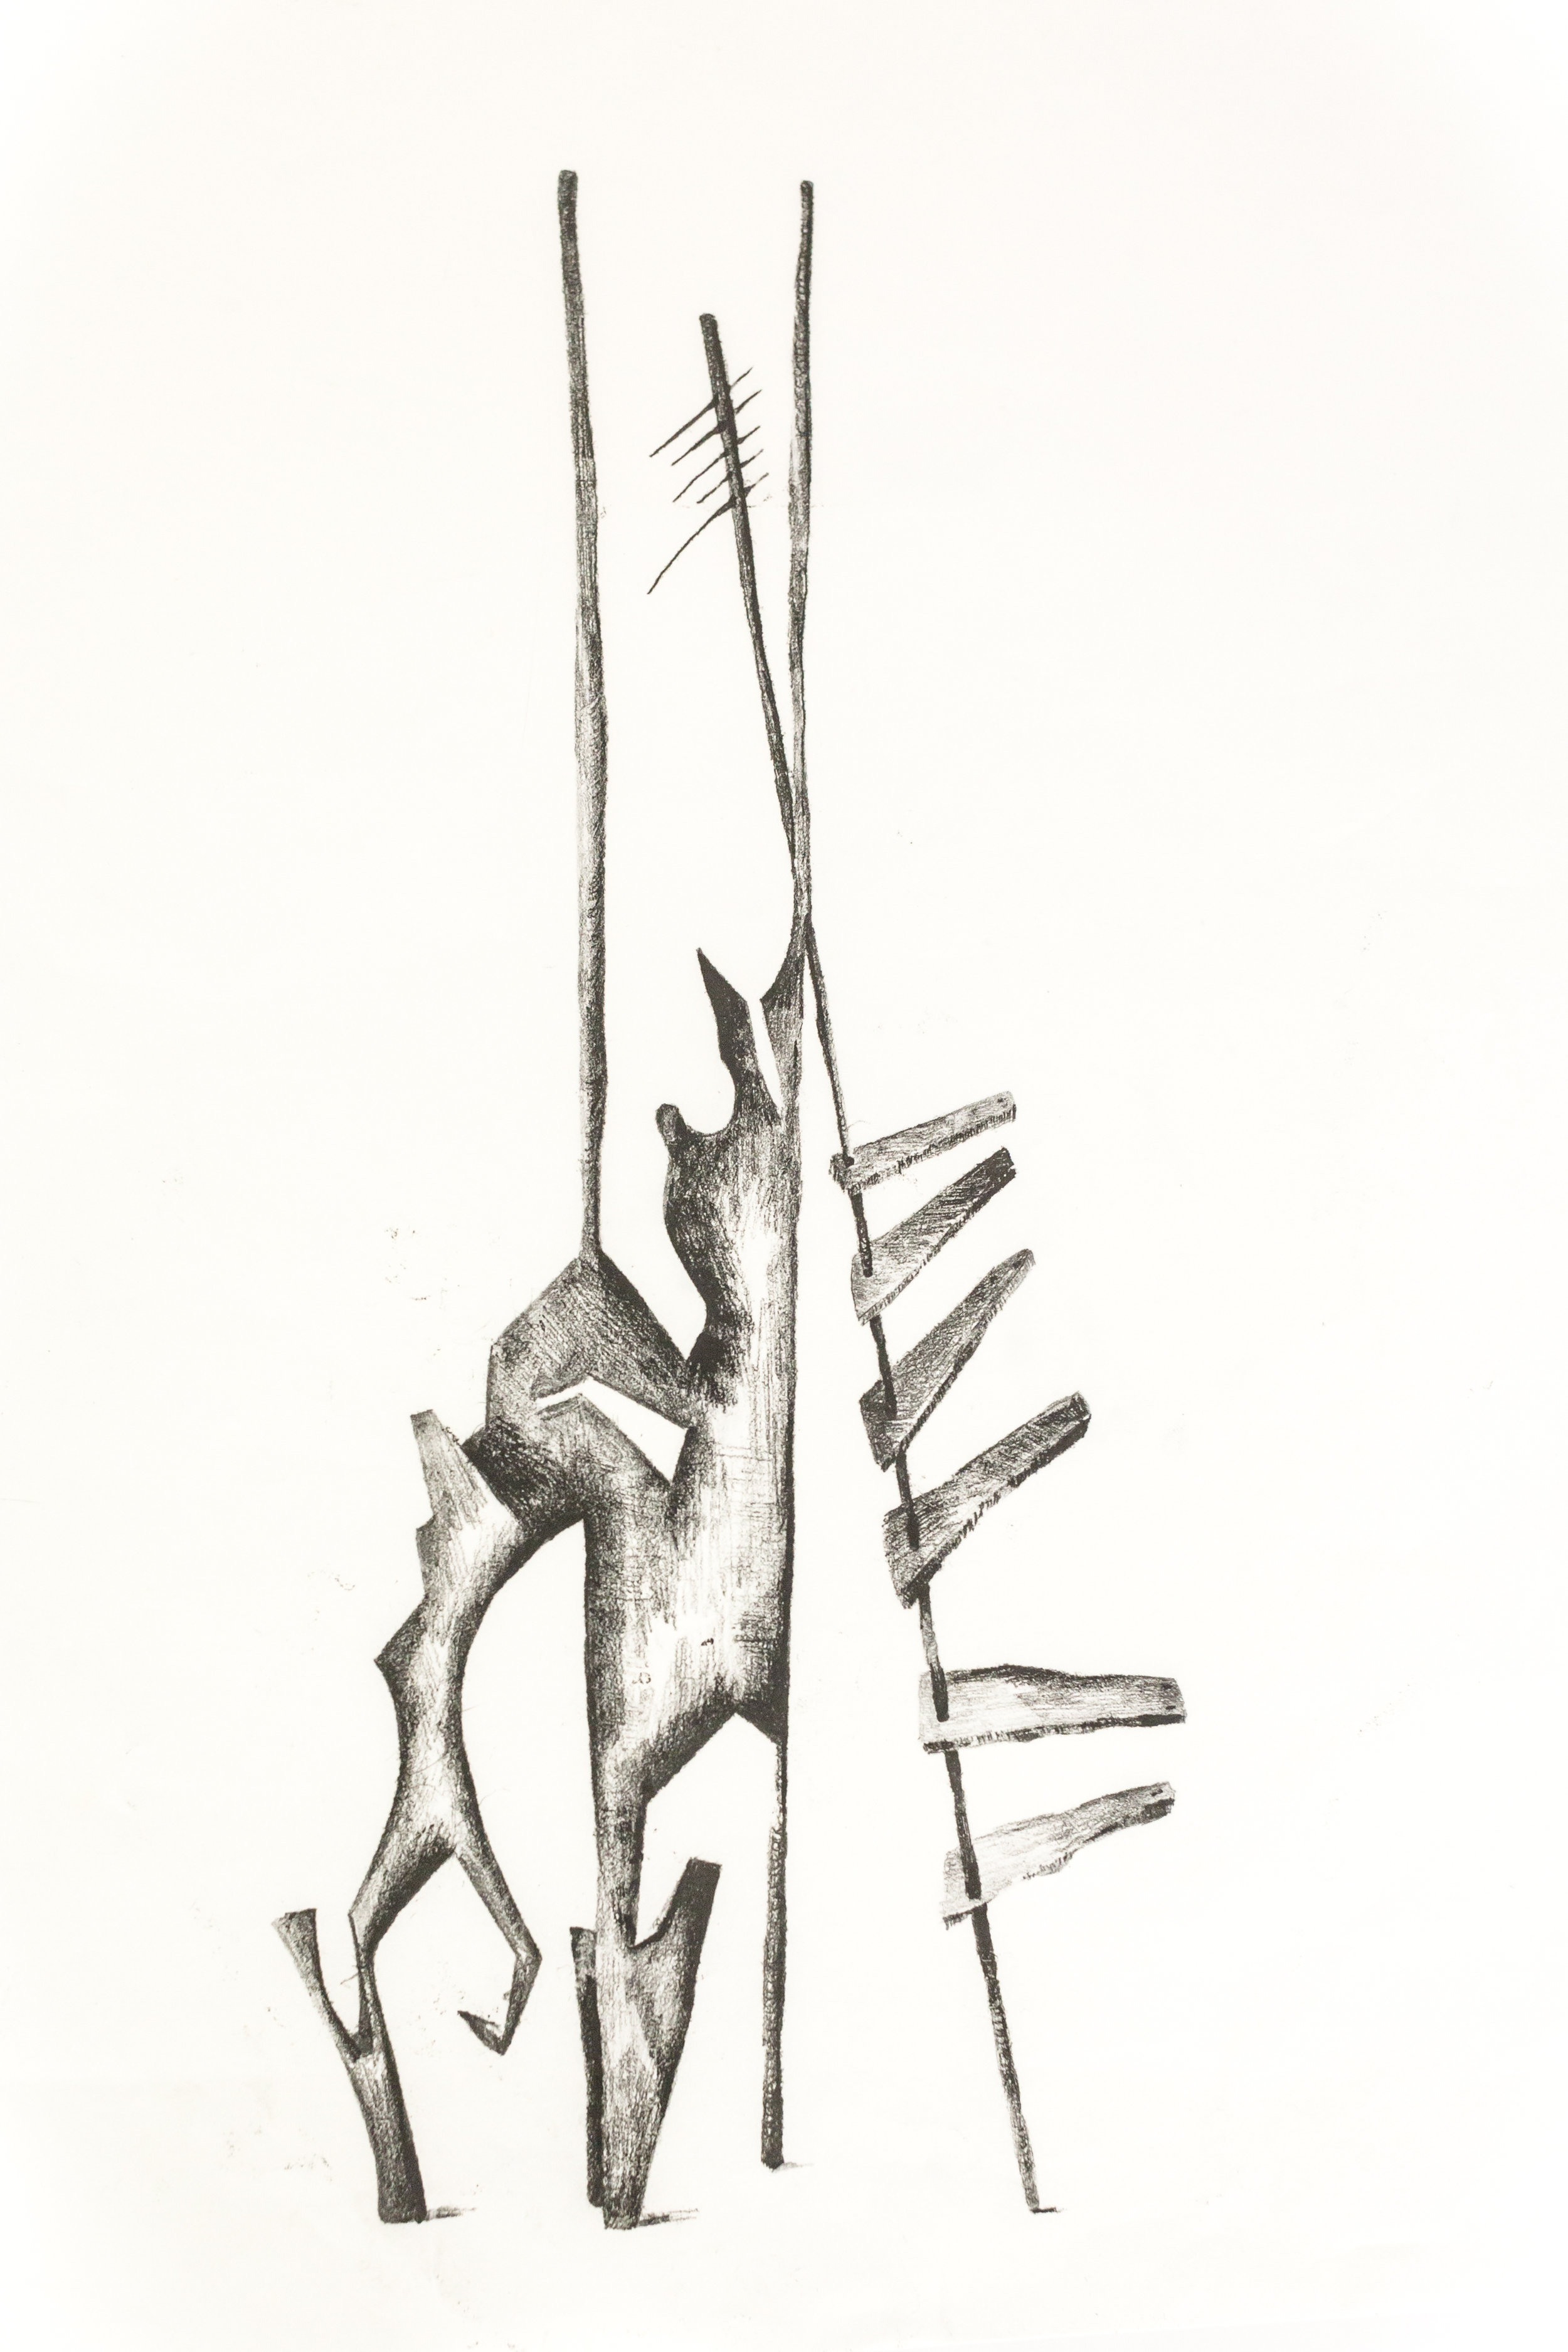 'Untitled Sculpture Drawing vii'